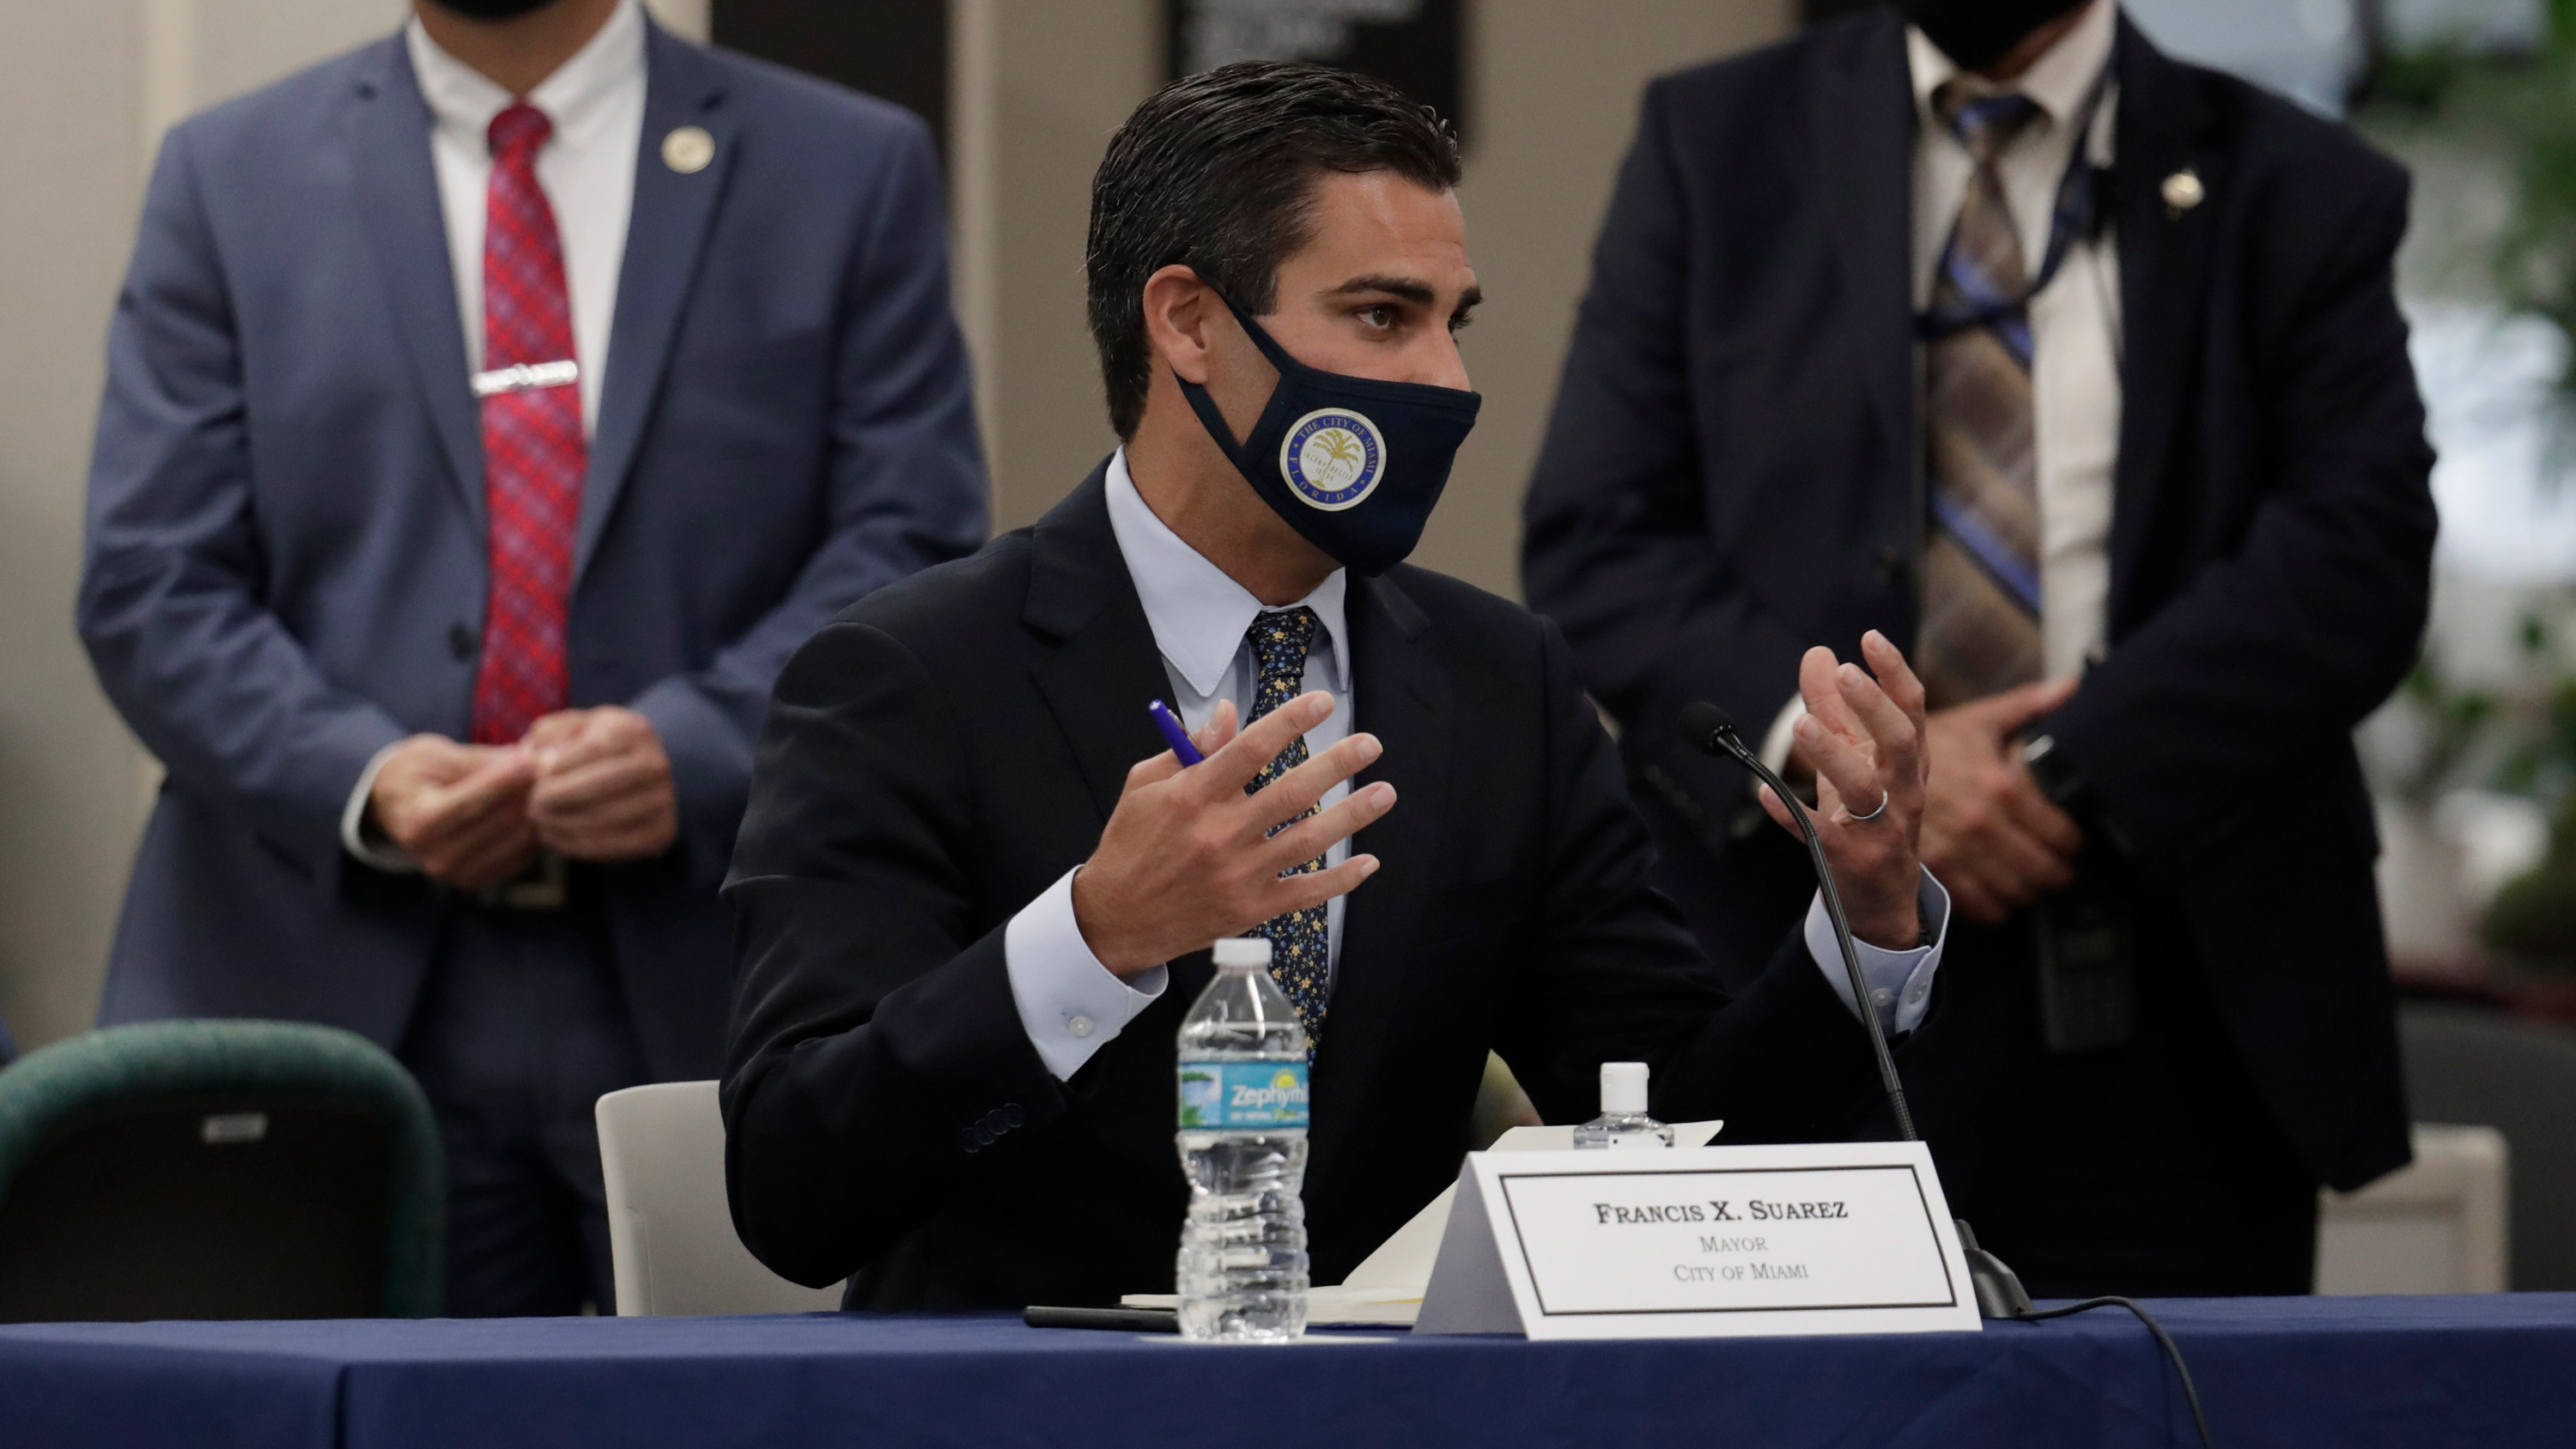 Miami Mayor Francis Suarez speaks during a roundtable discussion on July 14 in Miami.